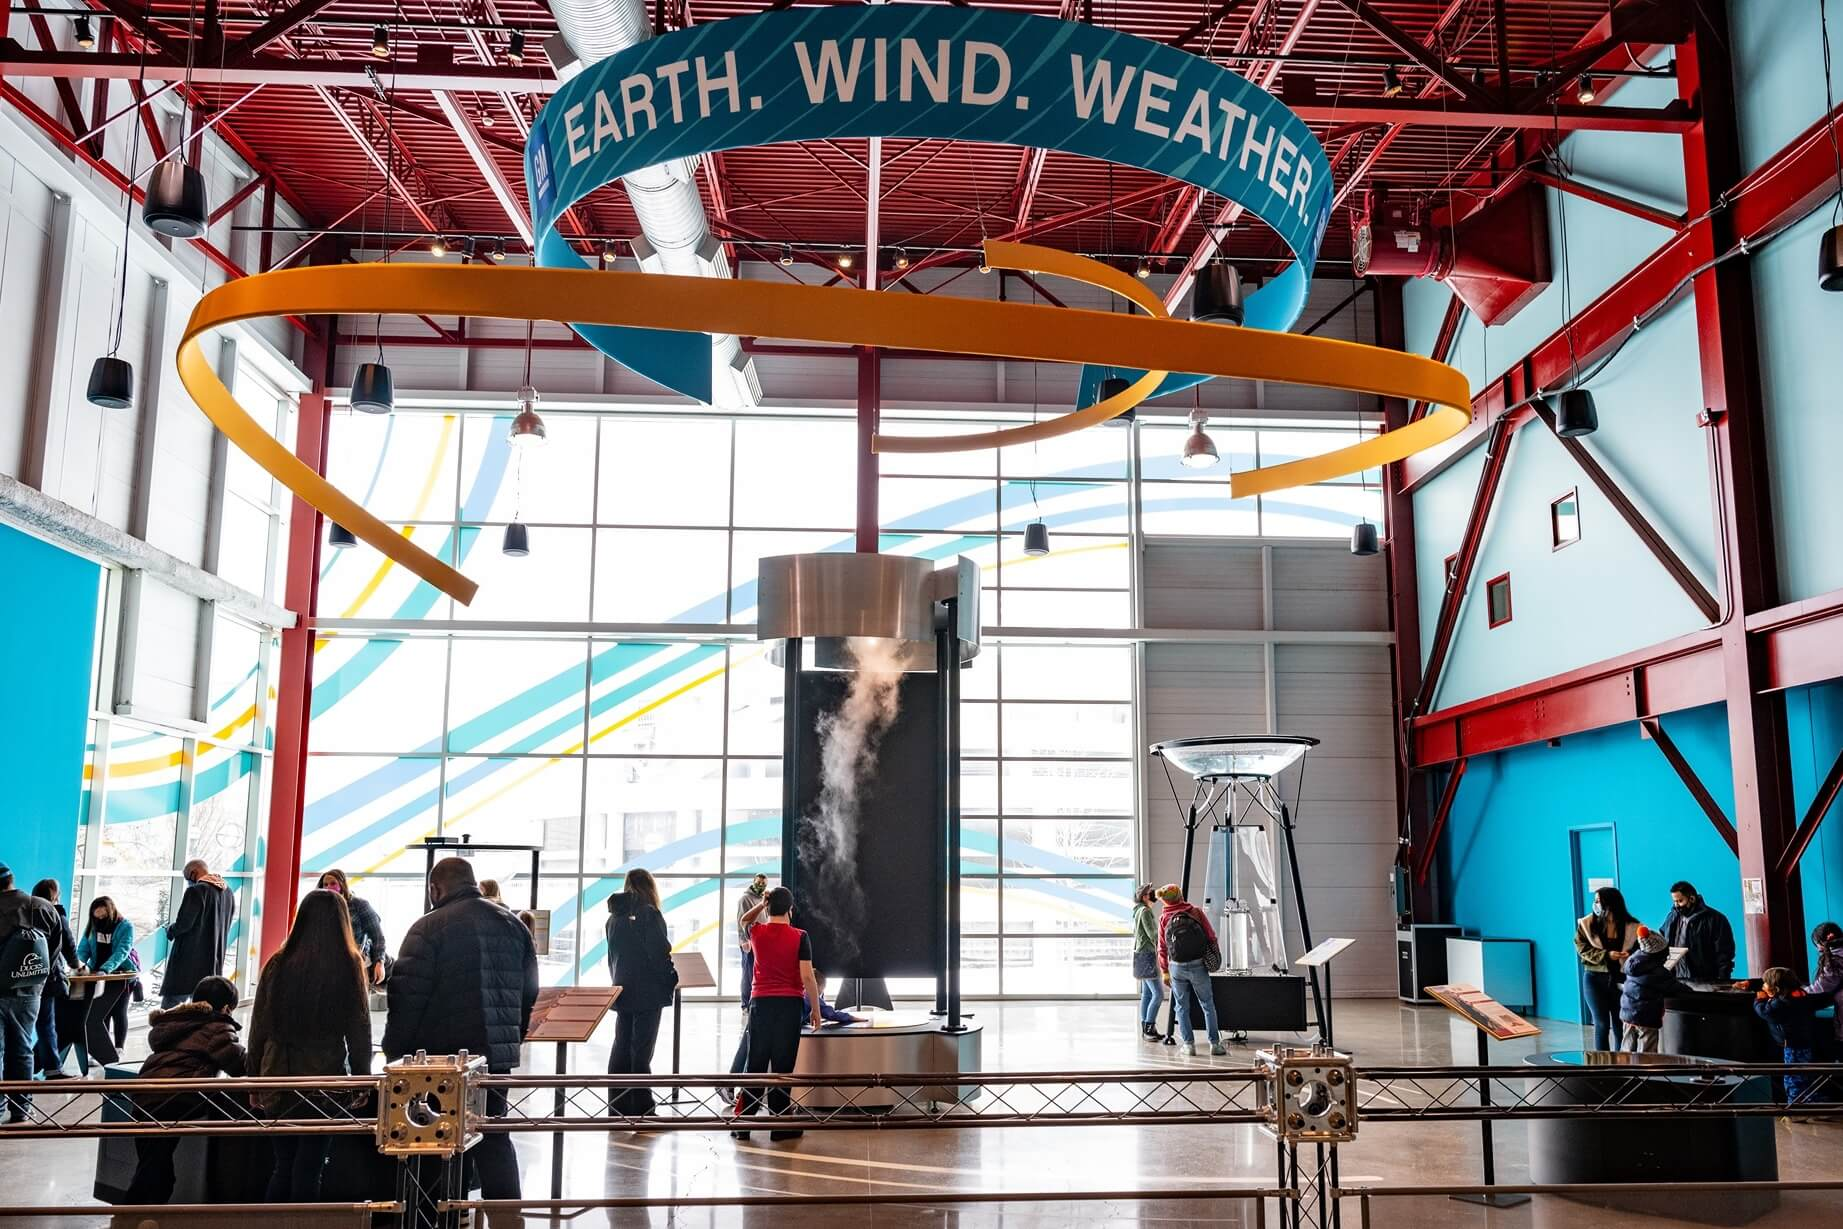 Earth. Wind. Weather GRAND OPENING